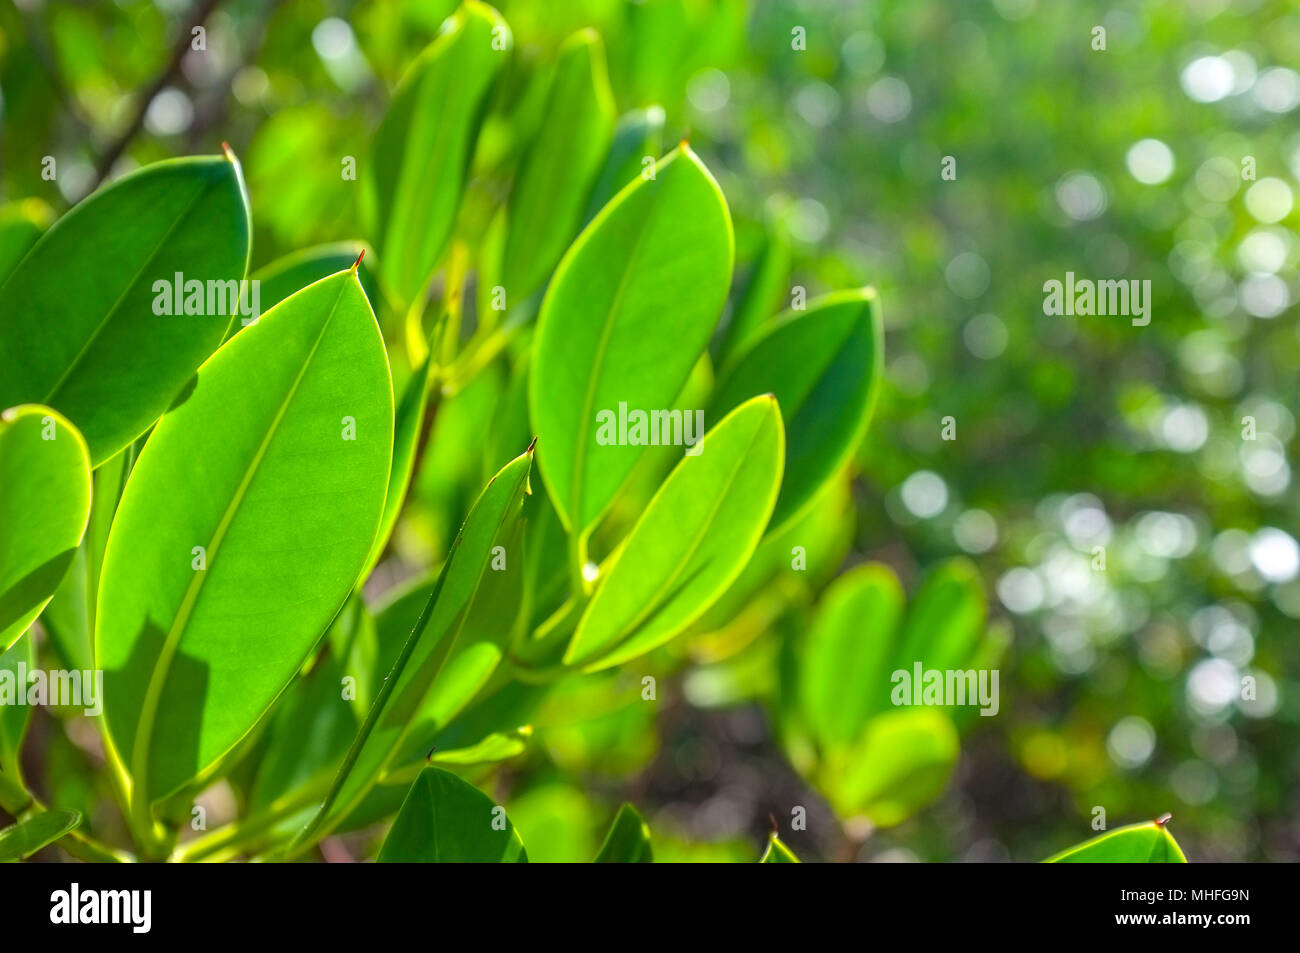 close-up-of-mangrove-trees-leaves-at-eas